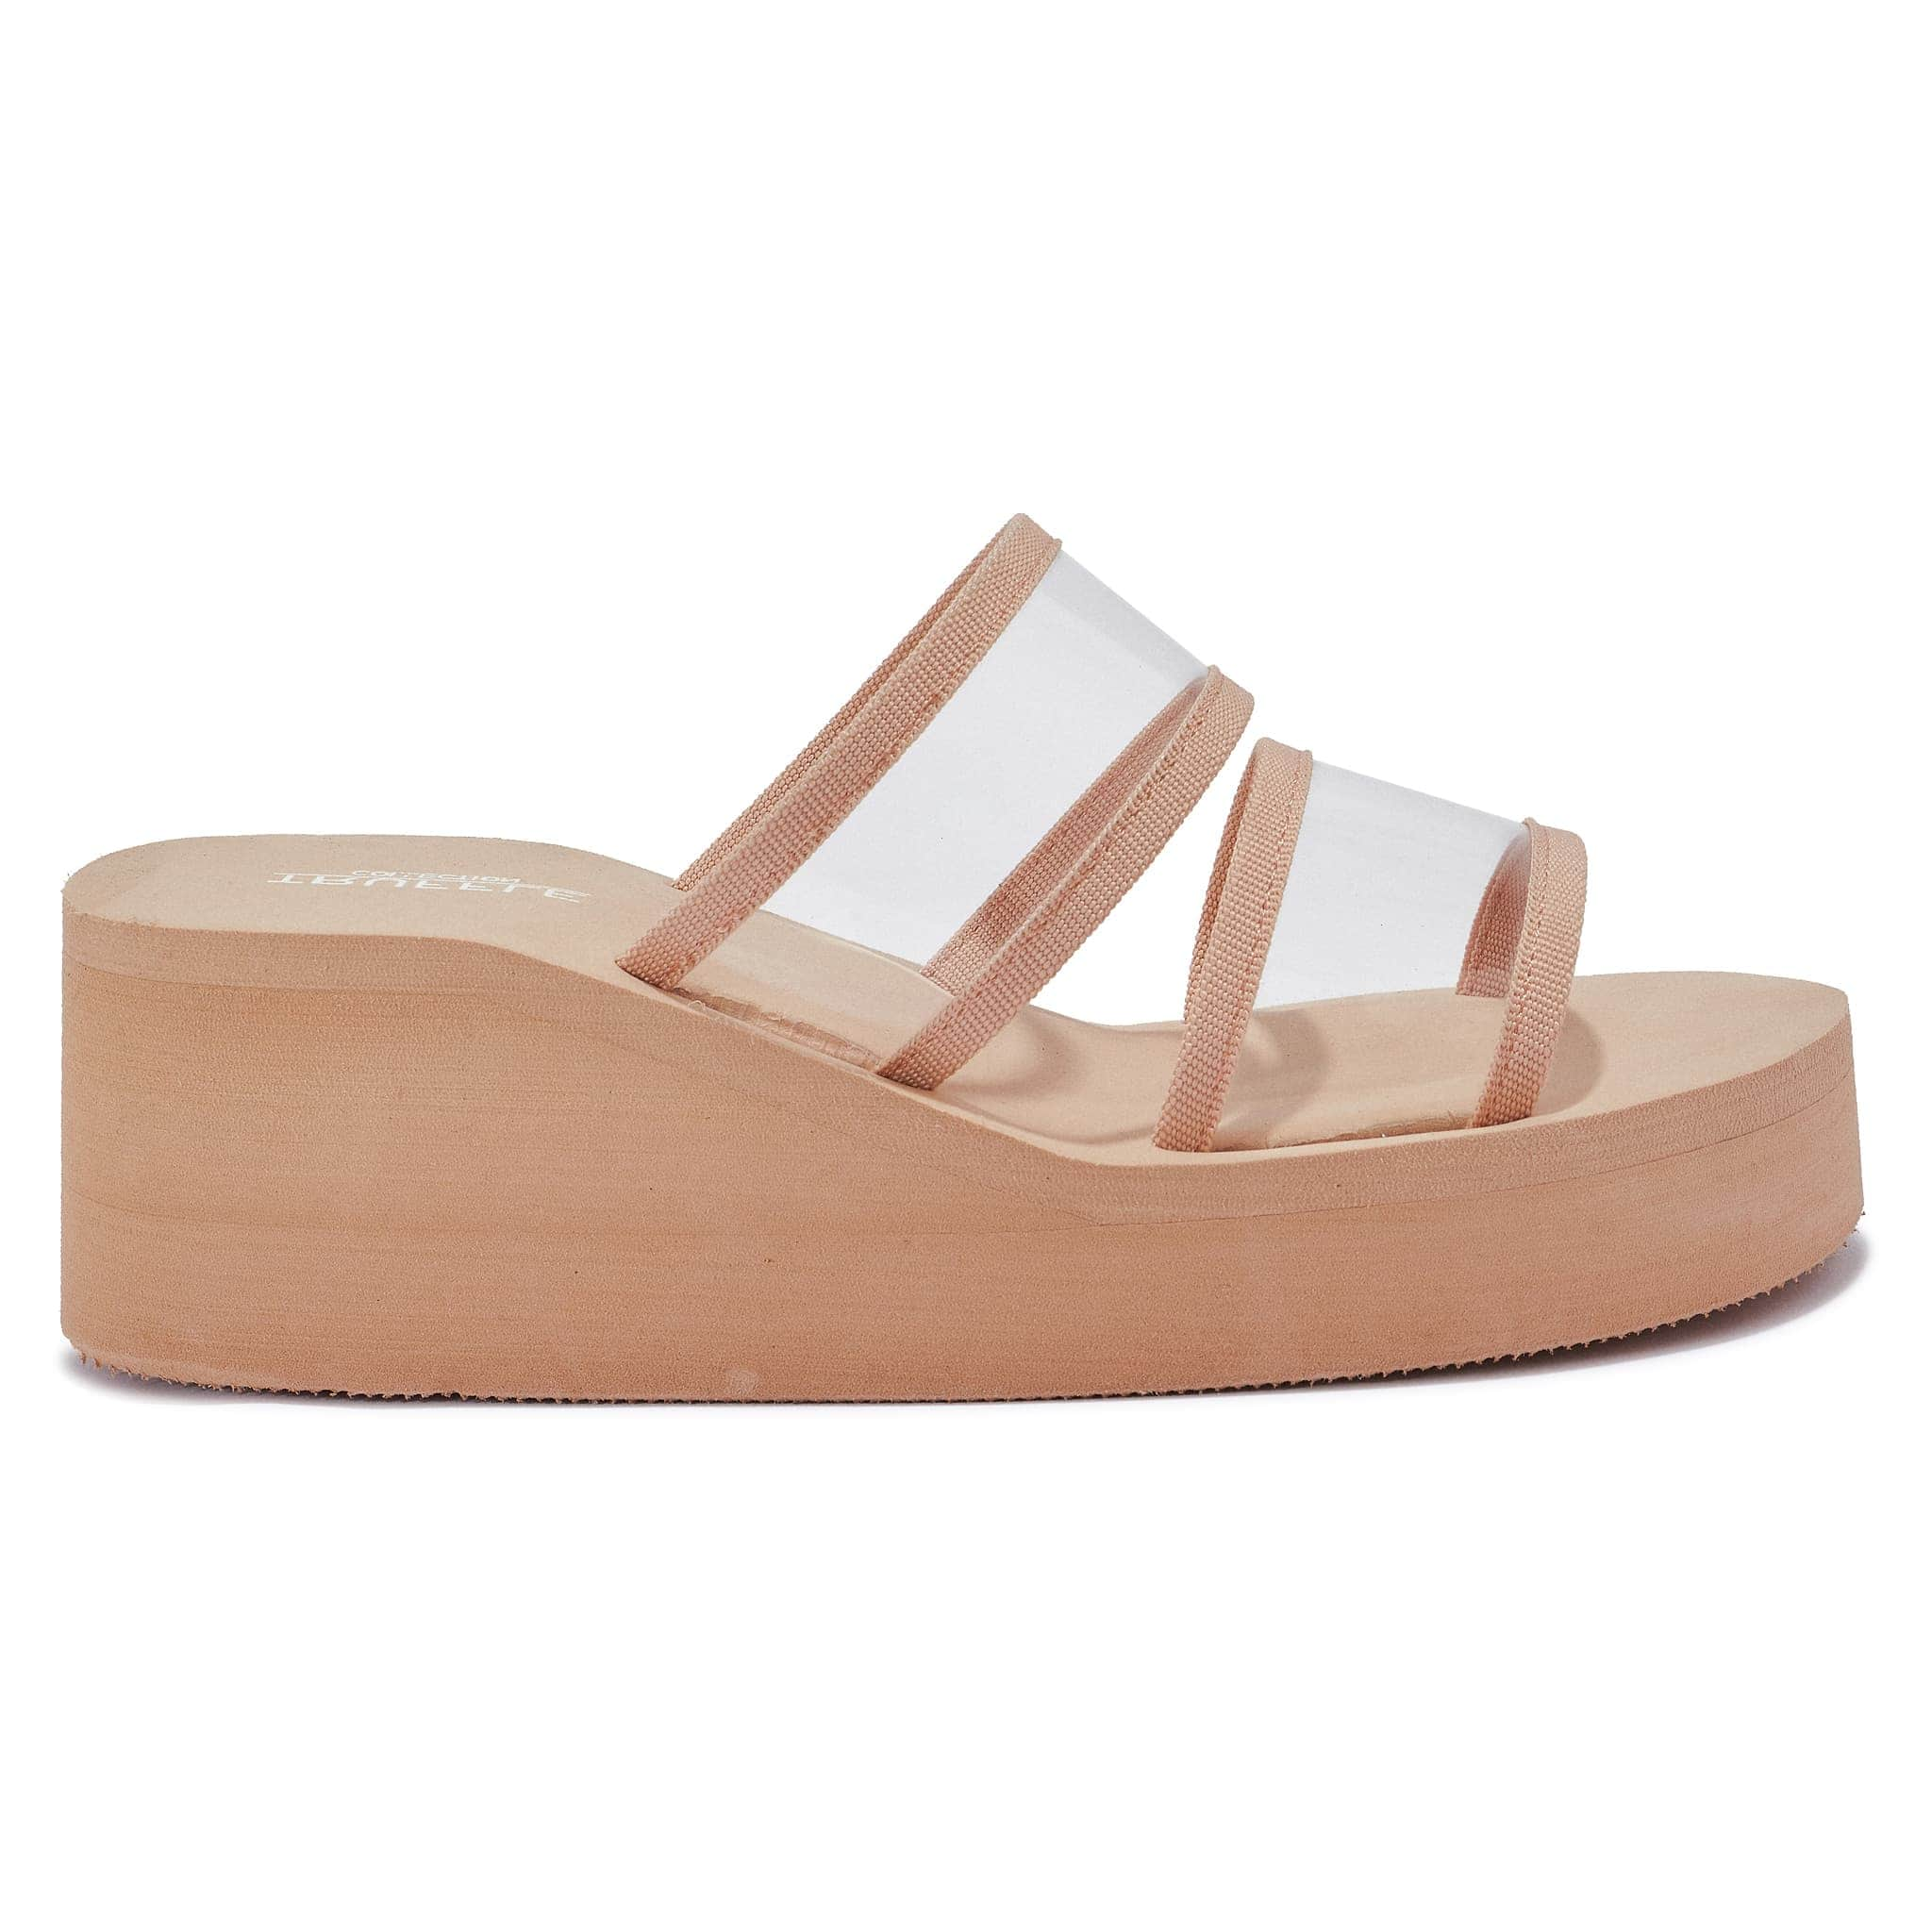 Nude Wedge Mules with Perspex Straps